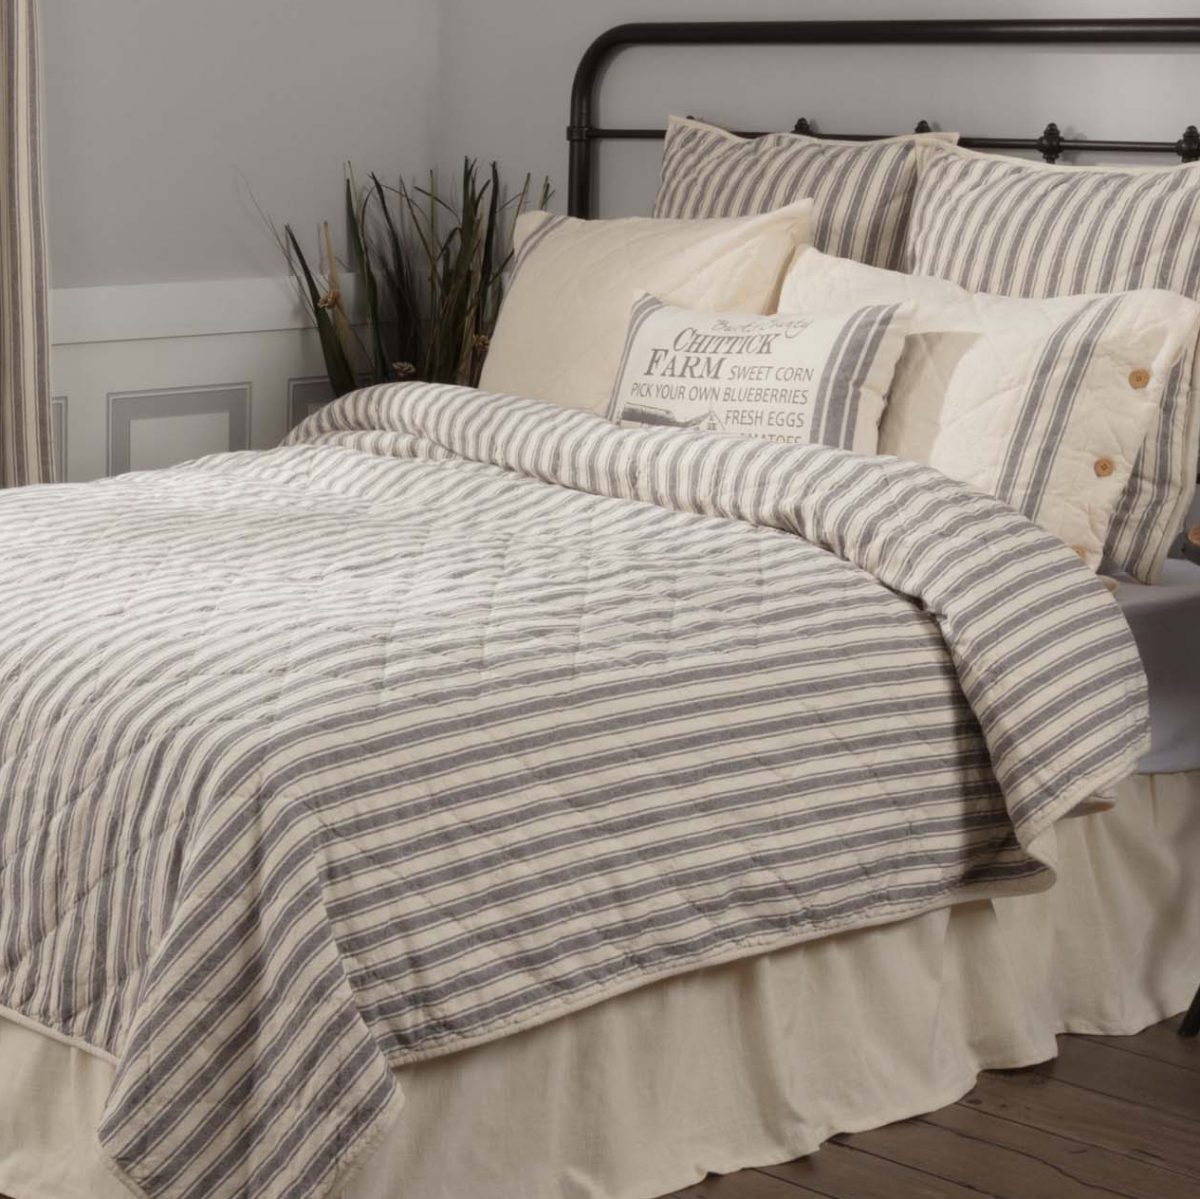 Market Place Ticking Stripe Quilt Twin Piper Classics